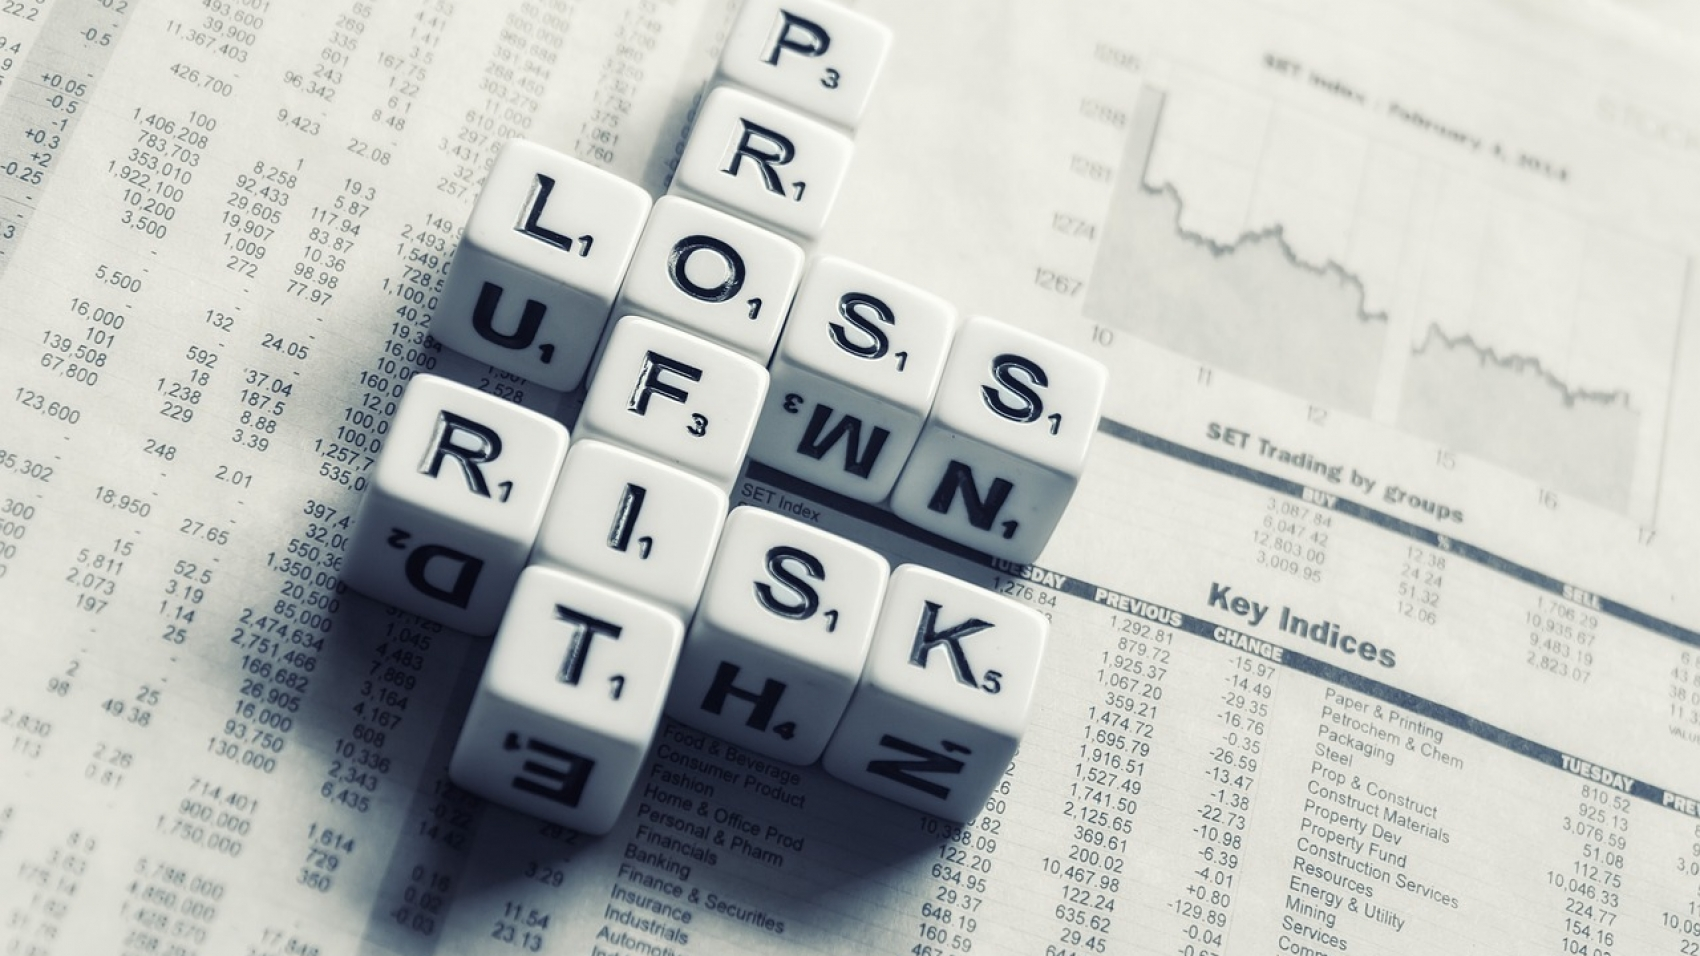 image for outsourcing services risks